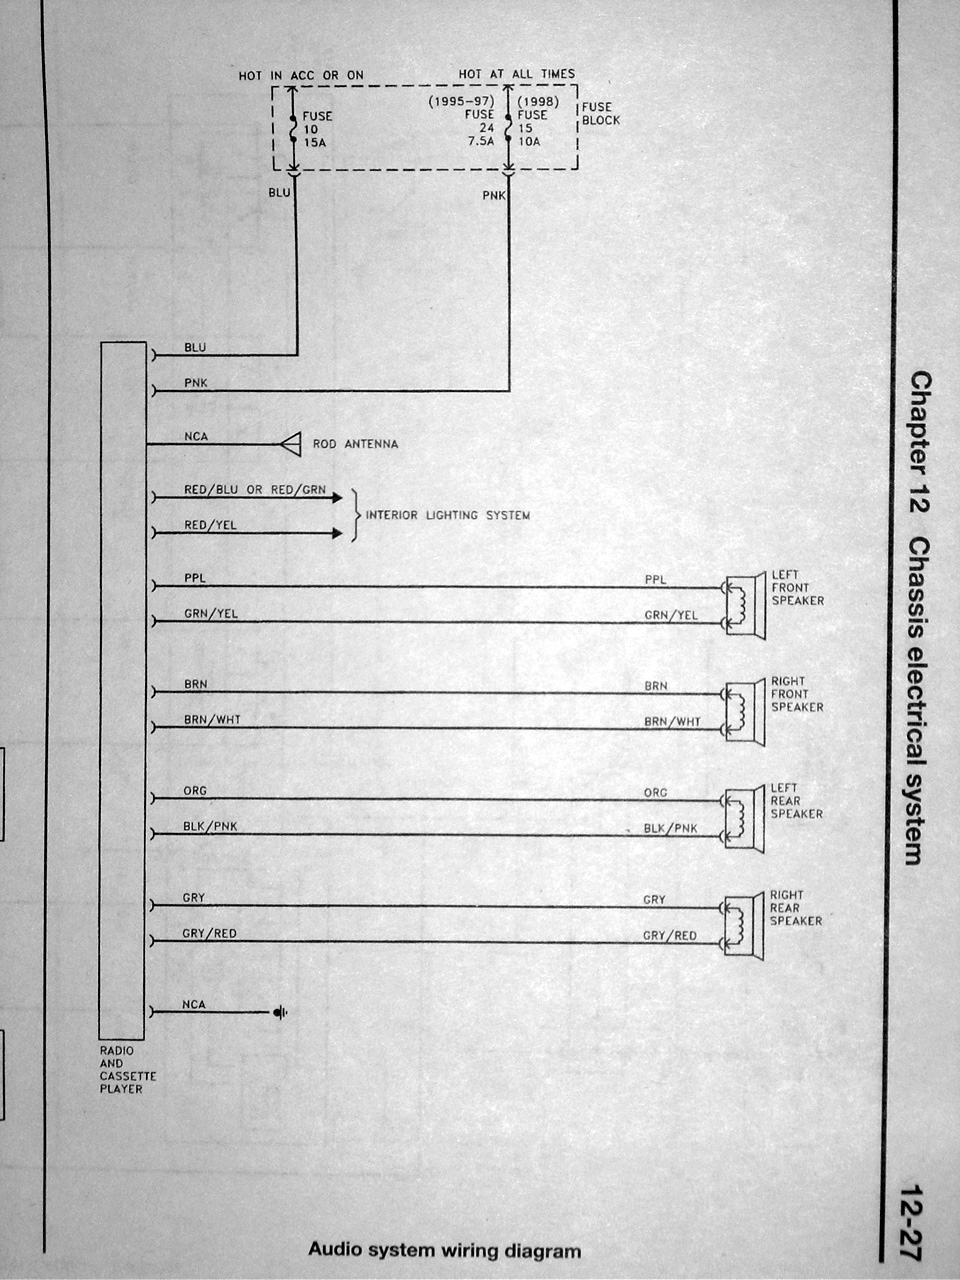 DSC01849 wiring diagram thread *useful info* nissan forum nissan note stereo wiring diagram at mifinder.co